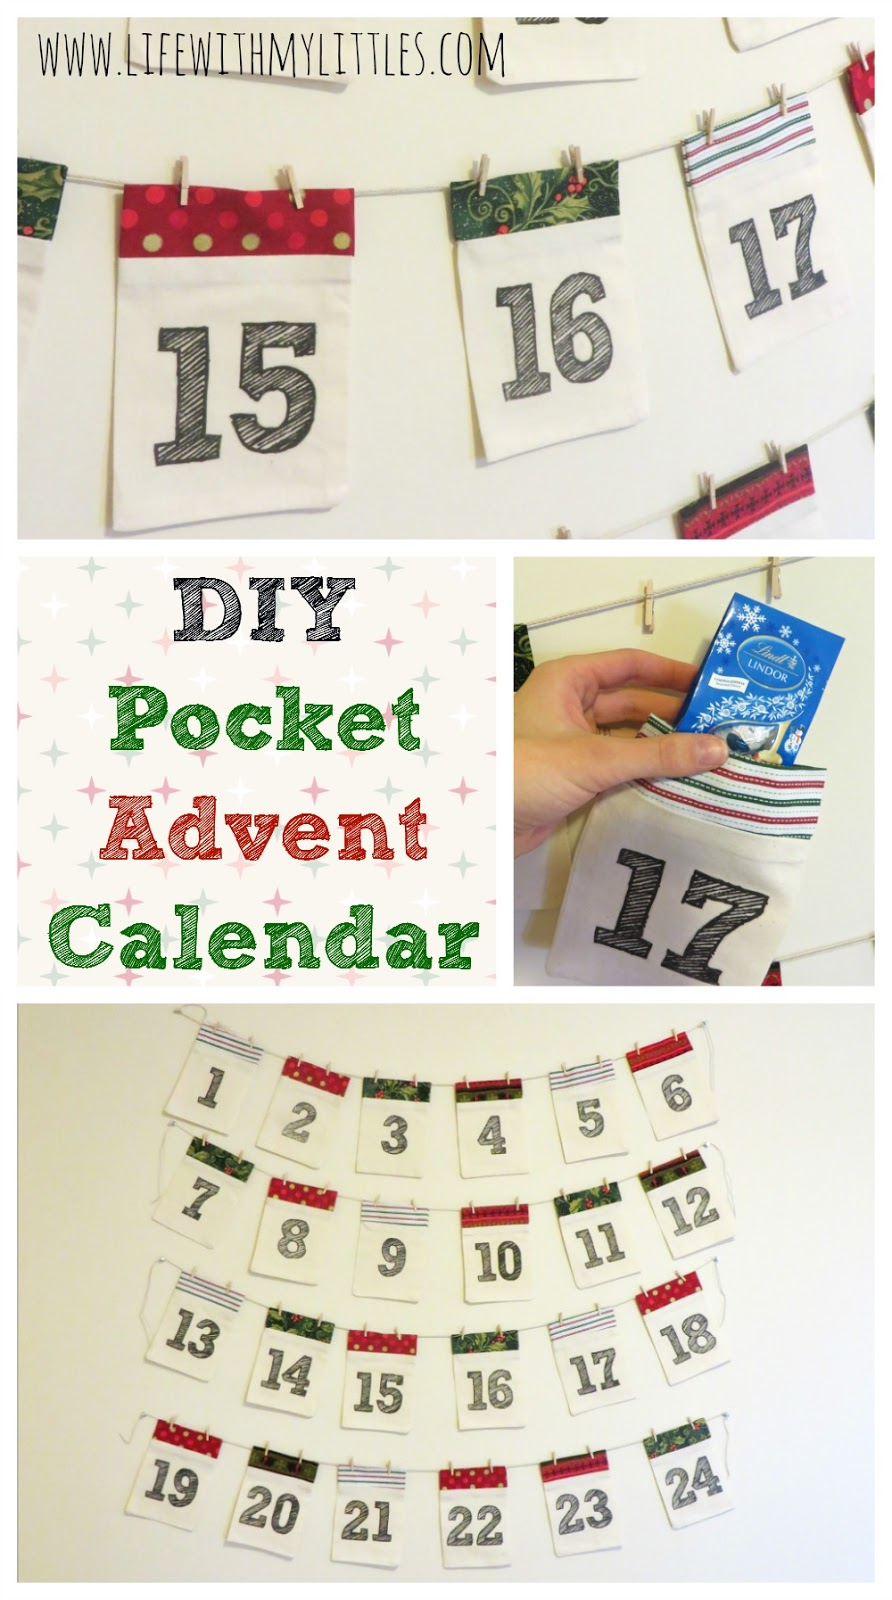 Diy Sewing Advent Calendar : Diy pocket advent calendar life with my littles